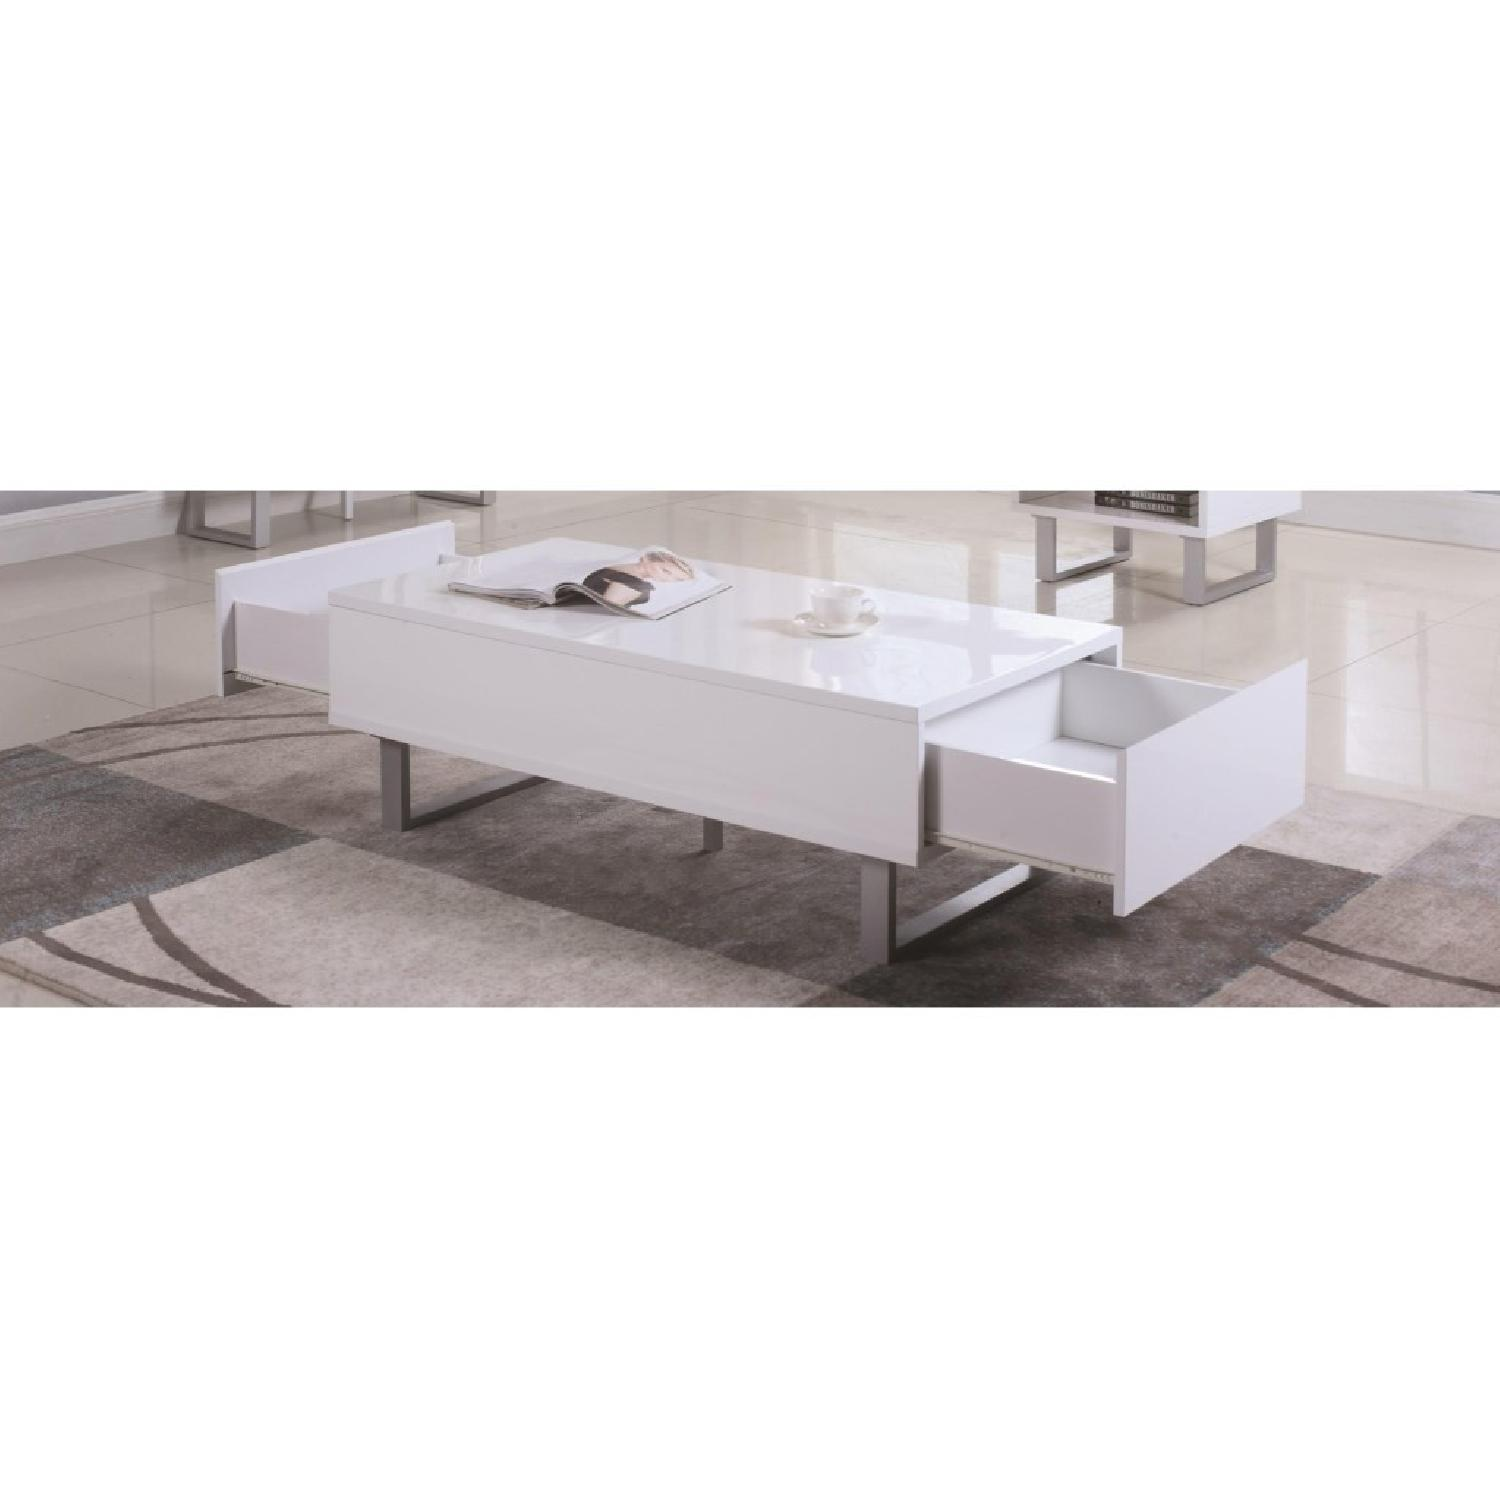 Glossy White Coffee Table w/ 2 Side Drawers - image-2